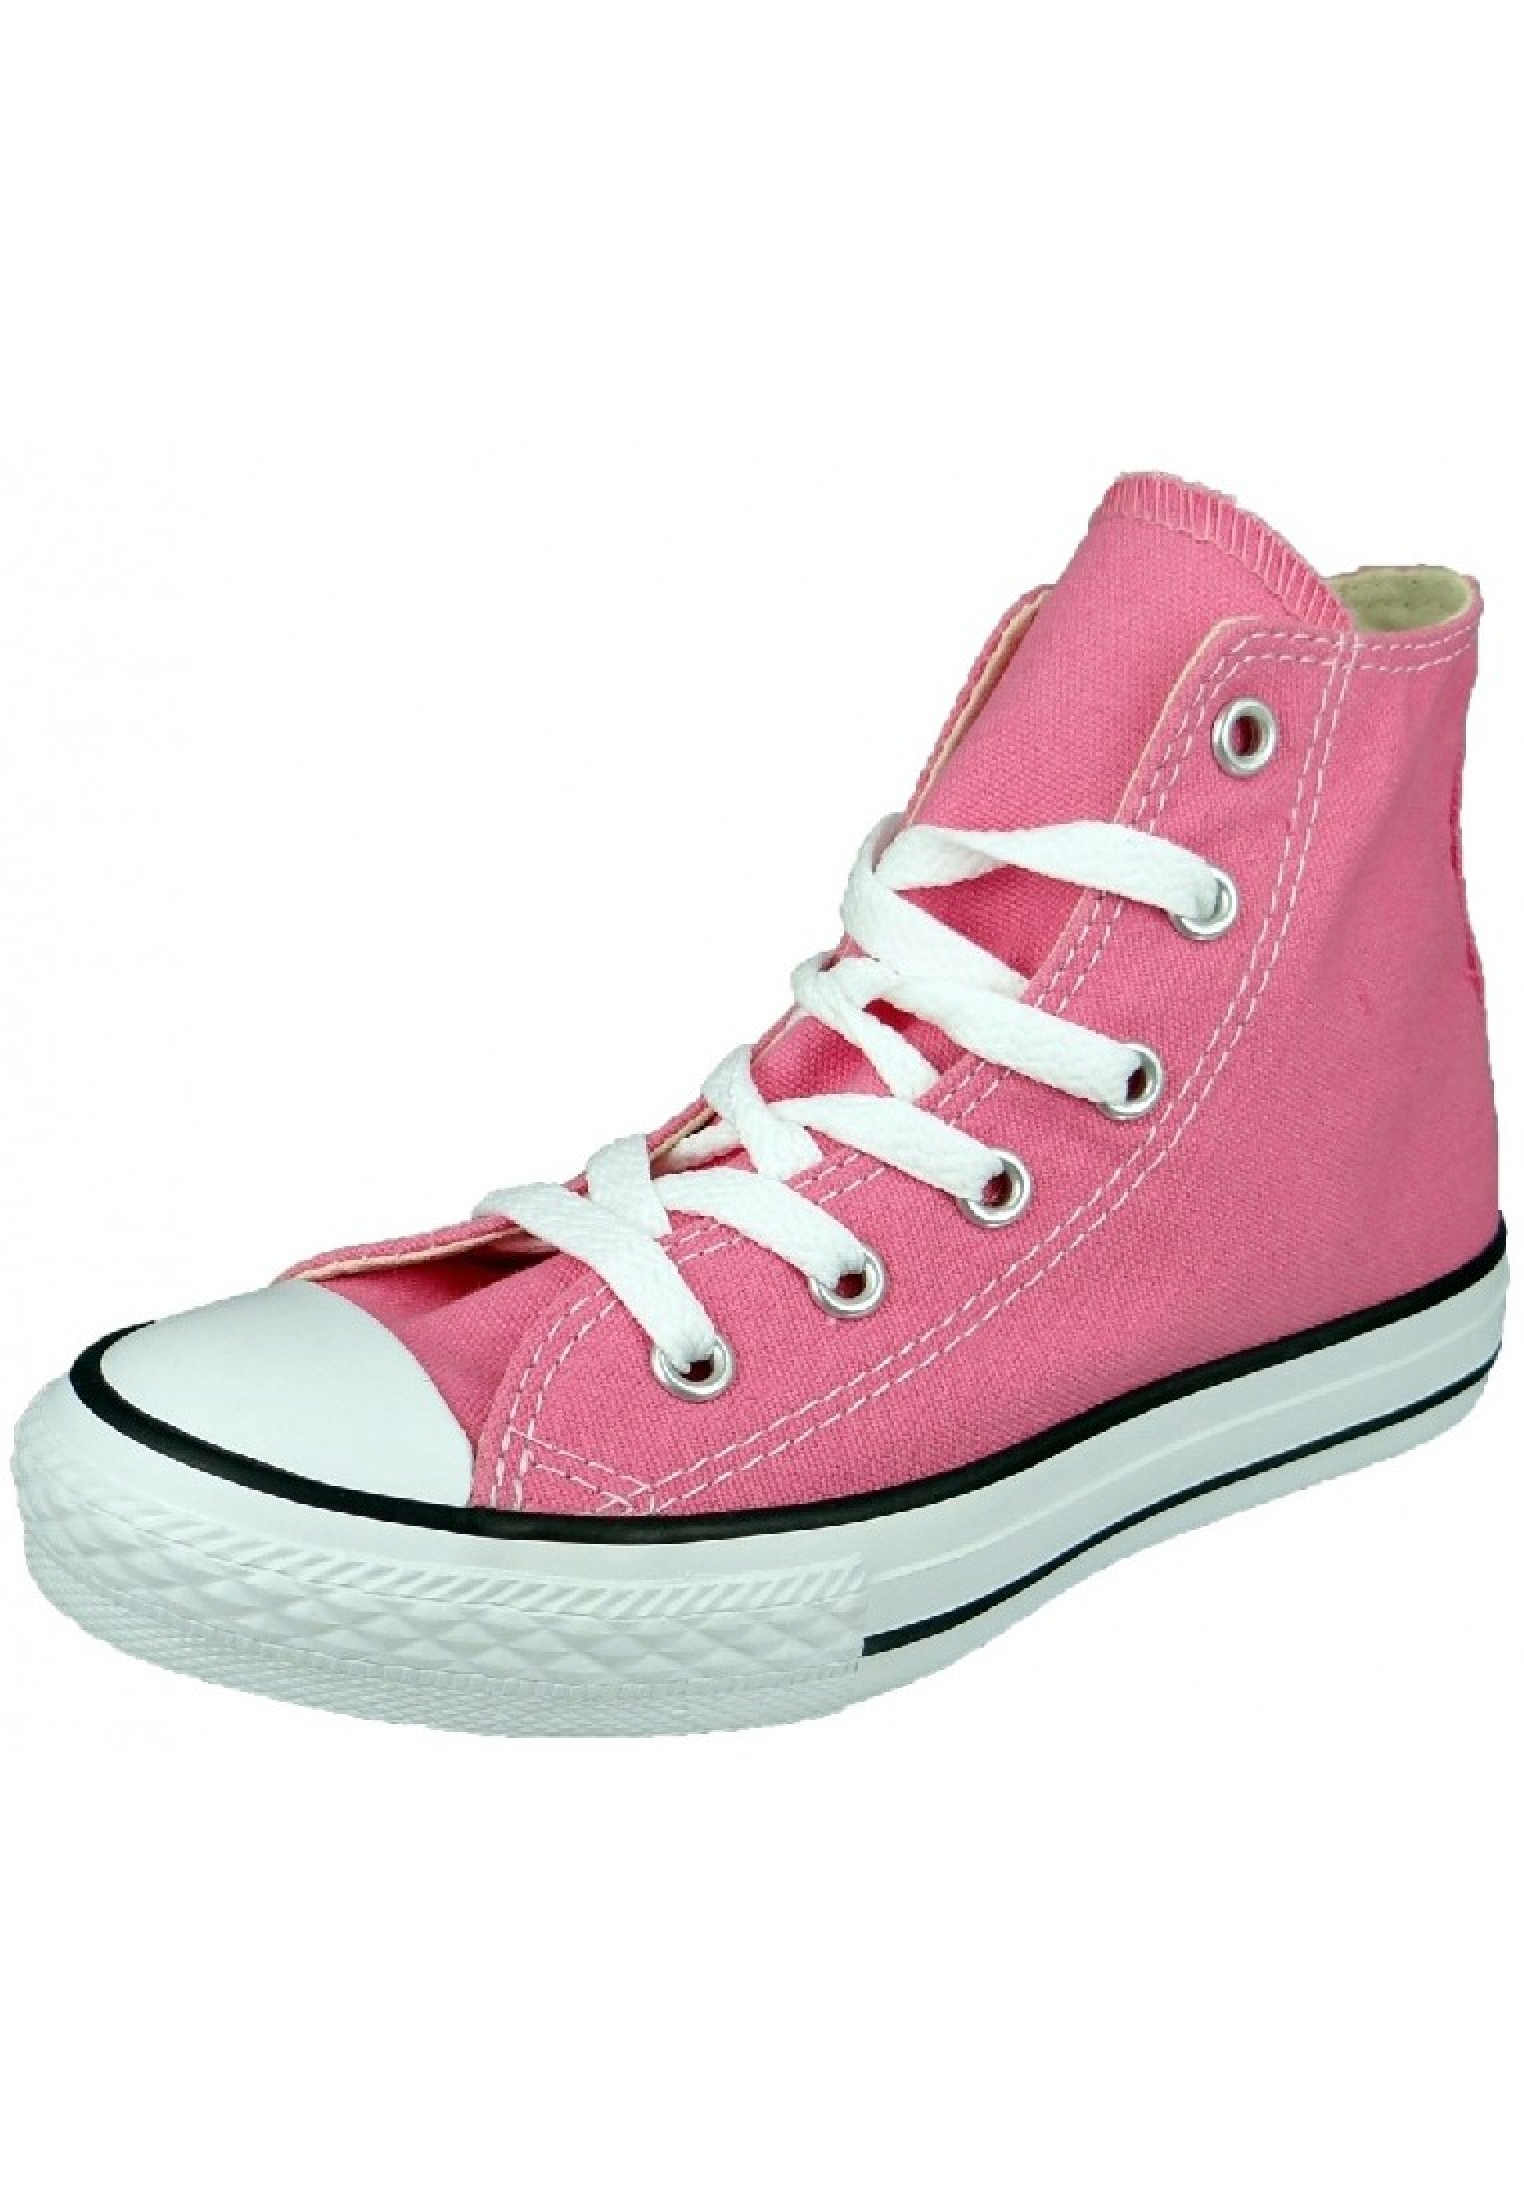 Converse Chucks Kinder 3J234C AS HI CAN Pink Rosa